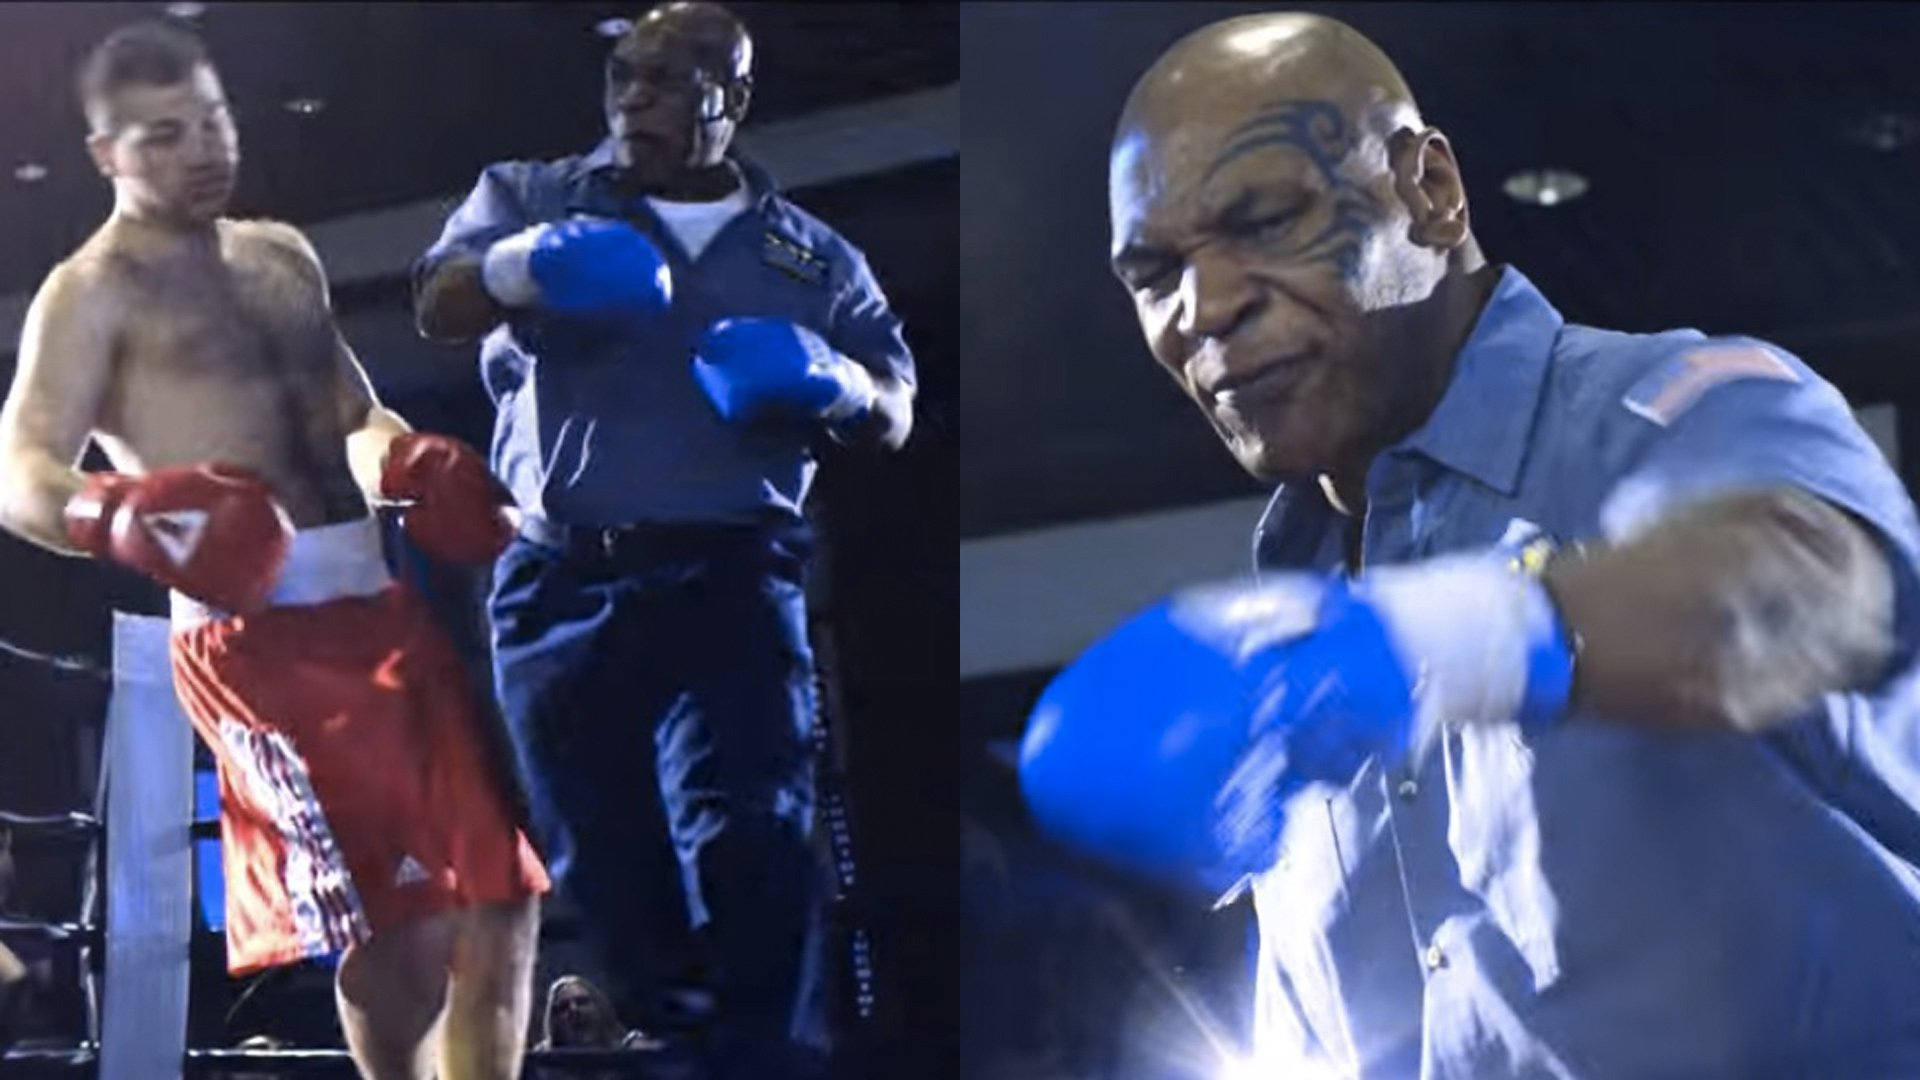 RT @mashable: Mike Tyson KO'd someone in a Super Bowl ad you probably didn't see: https://t.co/xx5MnH9x4o https://t.co/y5pqWa2MjU